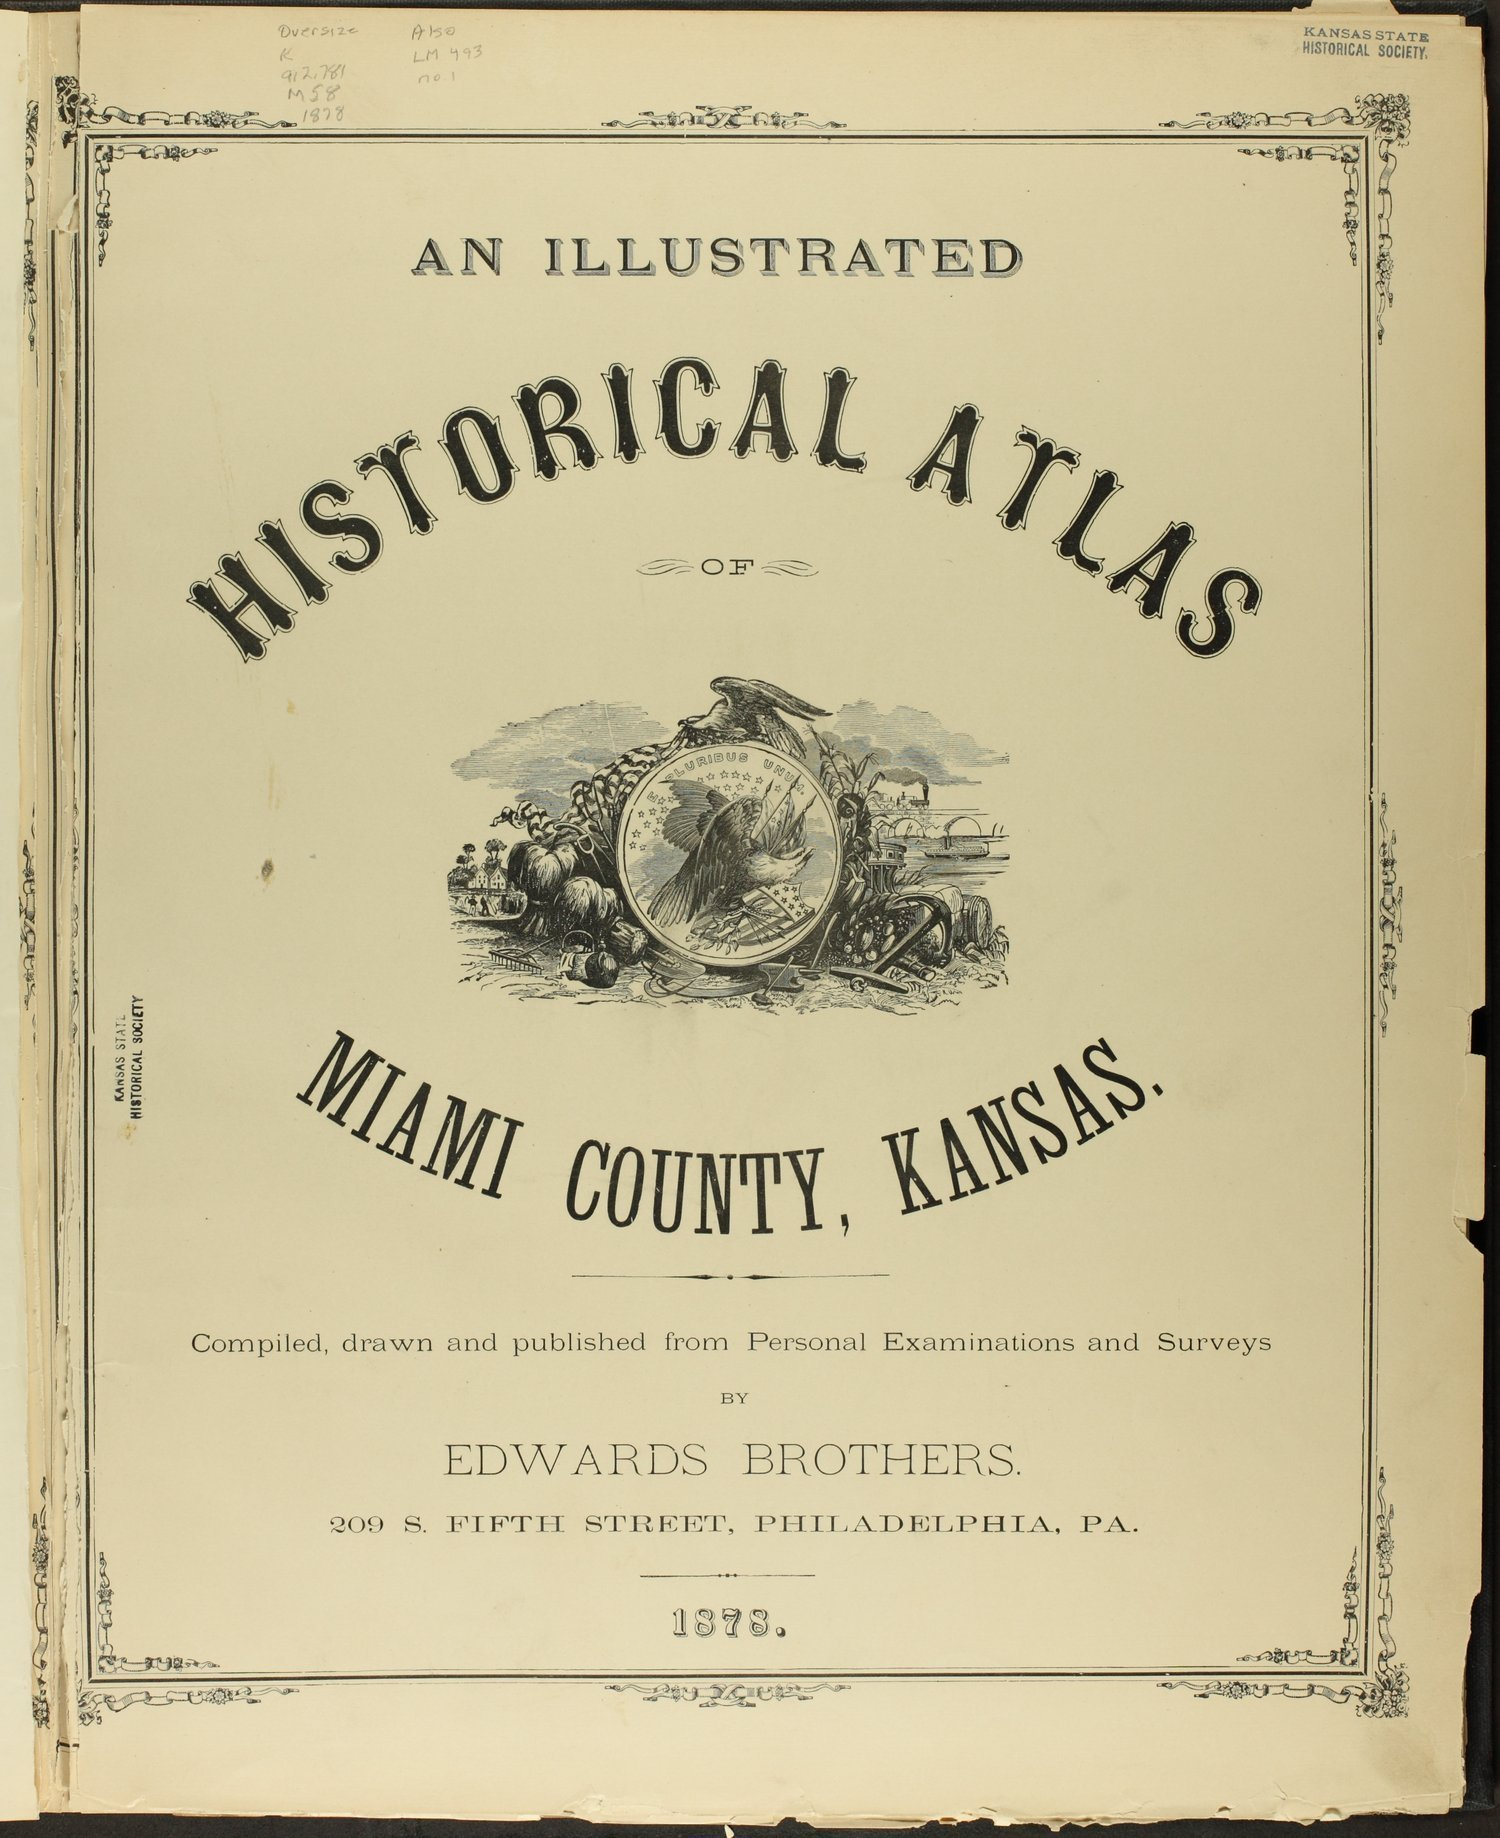 An illustrated historical atlas of Miami County, Kansas - Title Page